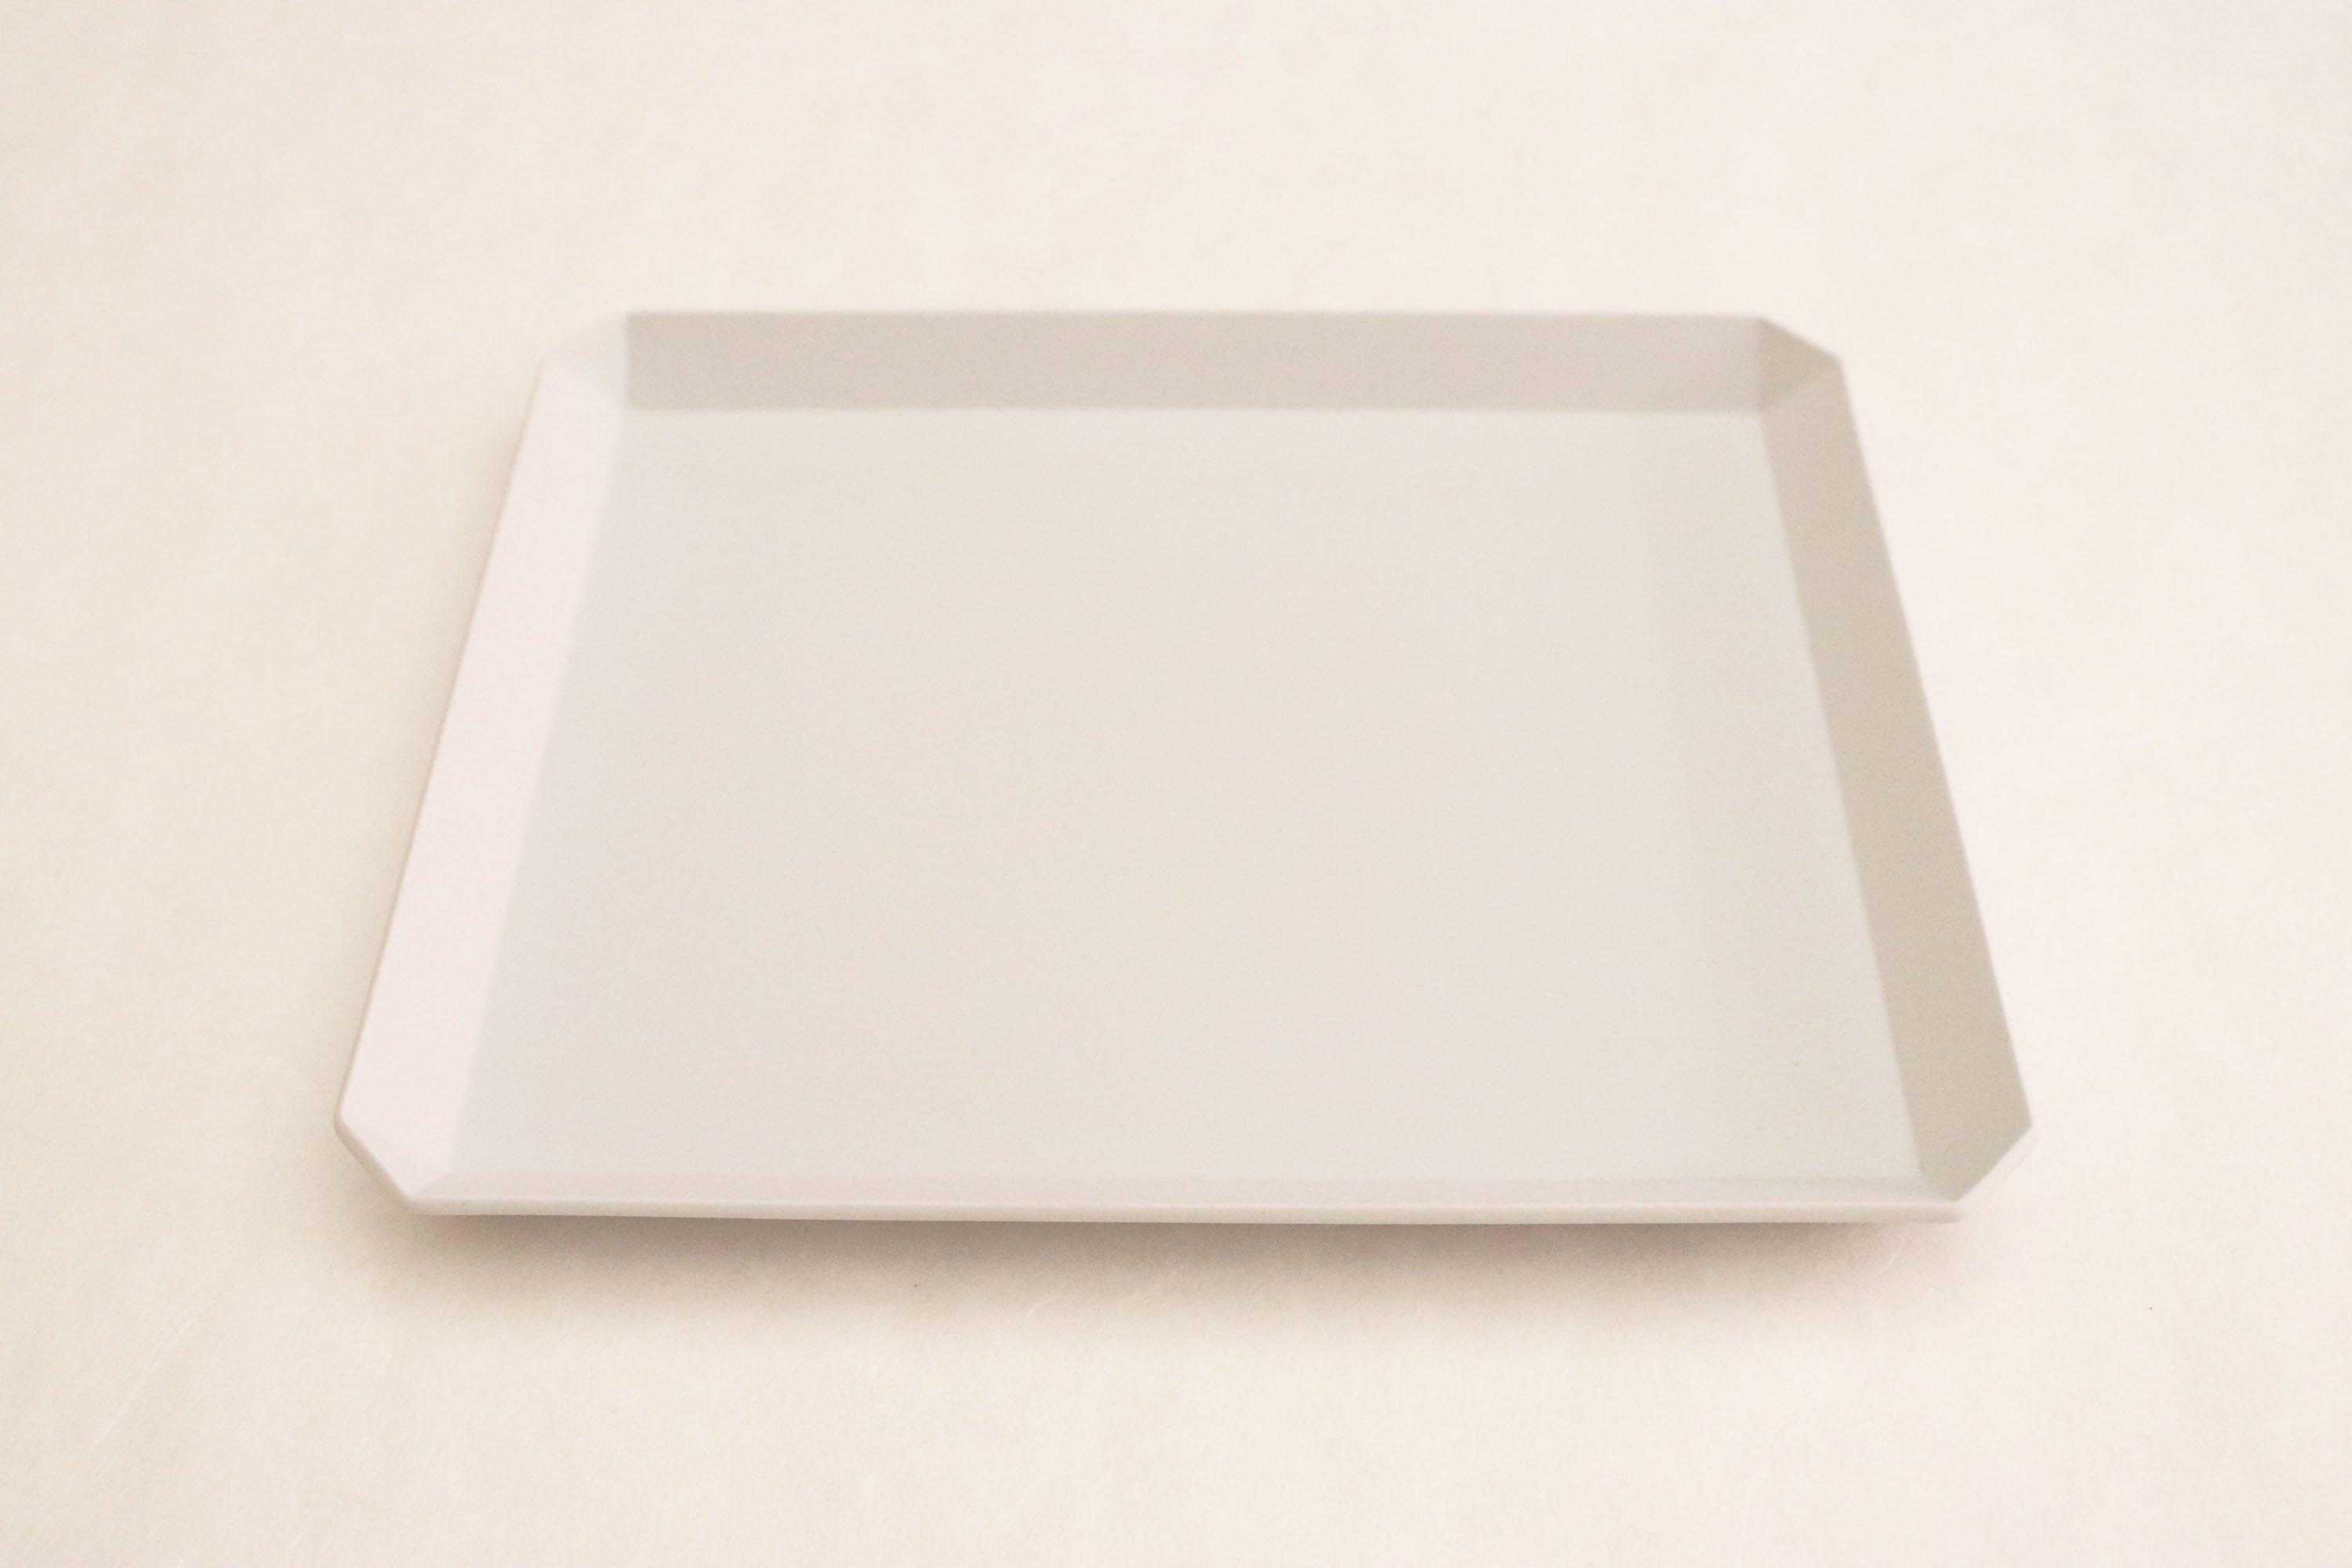 "TY""Standard"" Square Plate plain Gray 200"